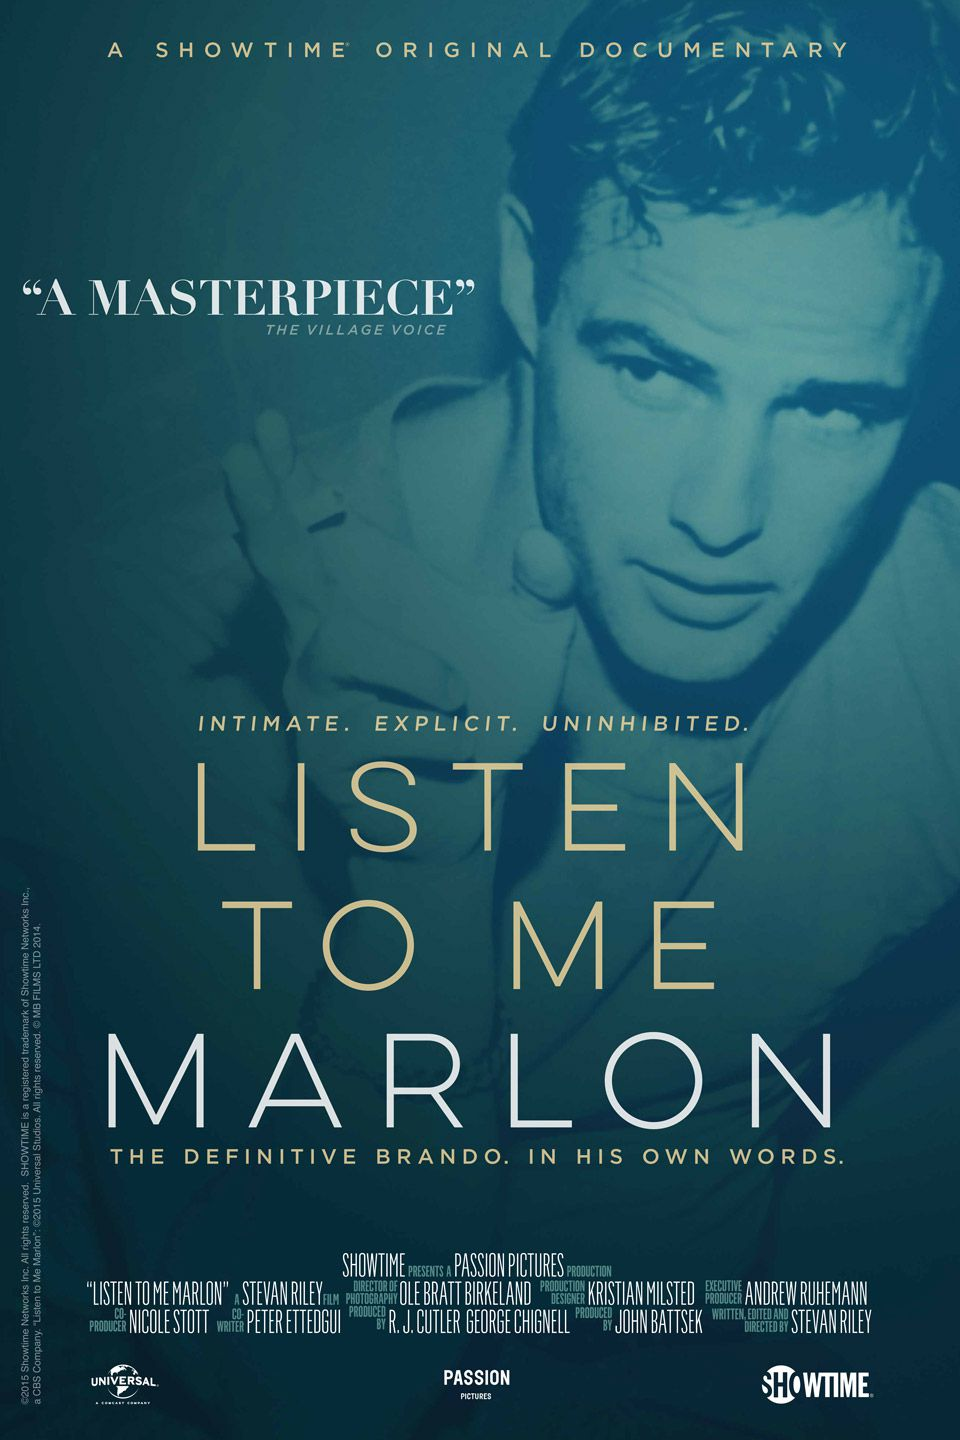 Listen to Me Marlon - Documentaire (2015) streaming VF gratuit complet